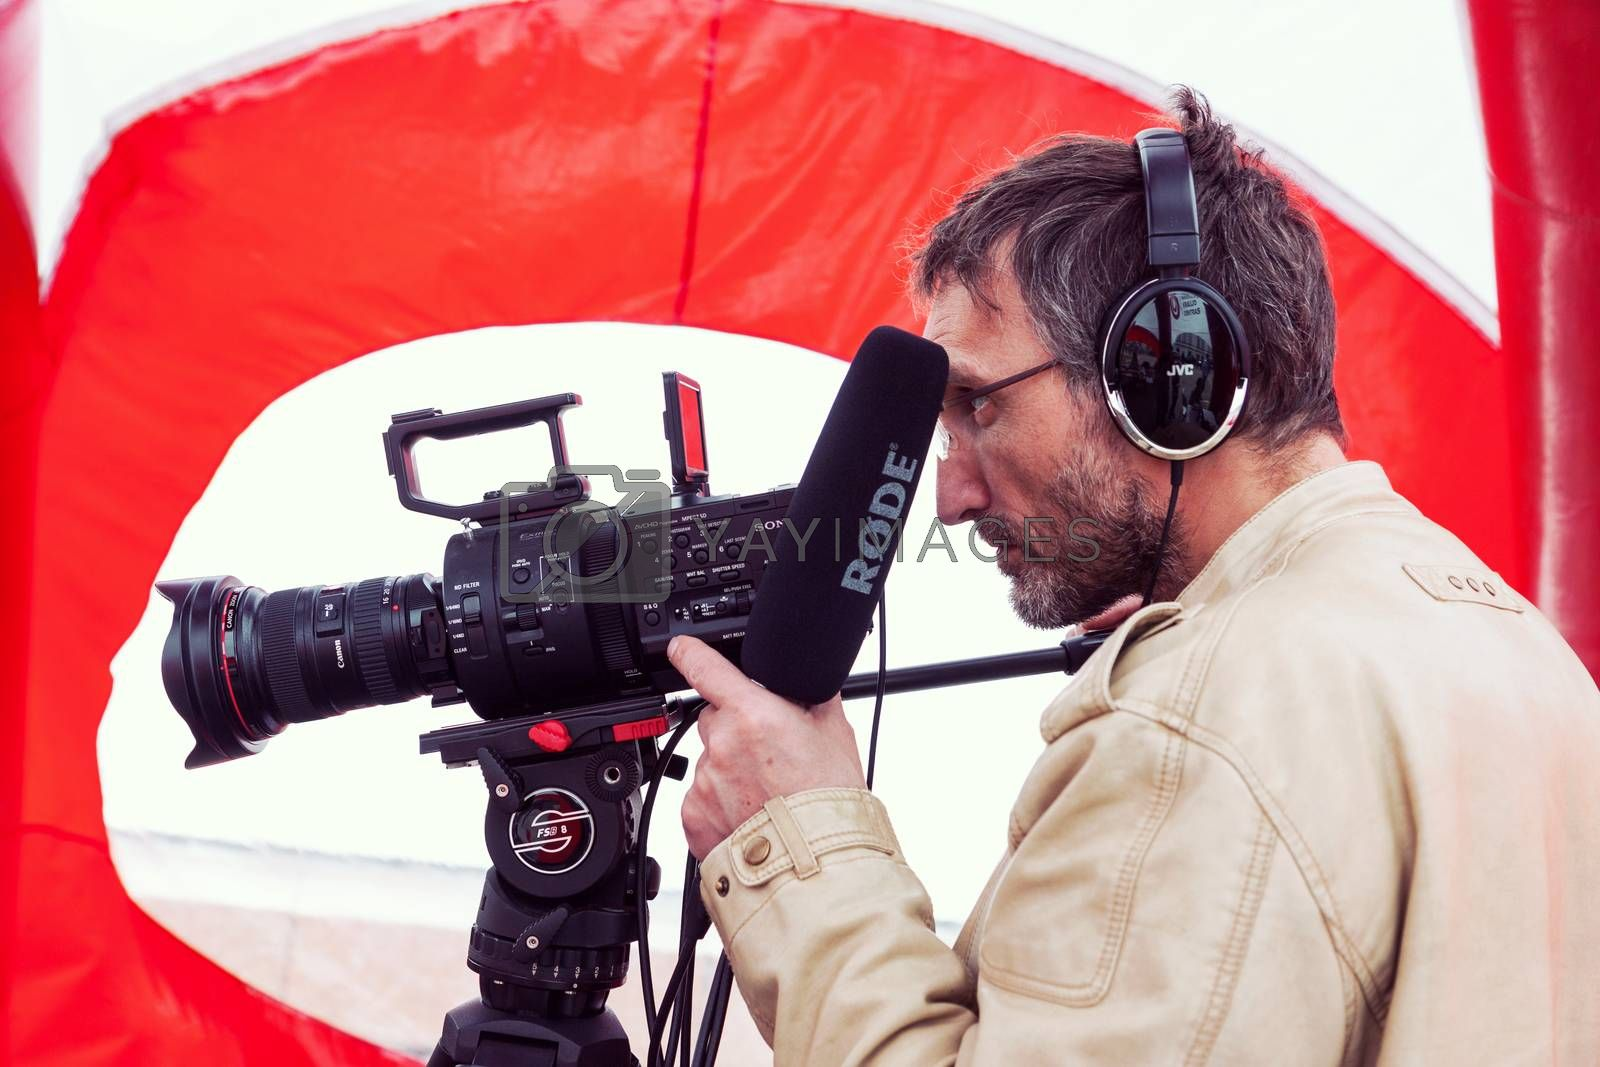 VILNIUS, LITHUANIA - MAY 21, 2016: Closeup of cameraman shooting event on the street in Vilnius, Lithuania